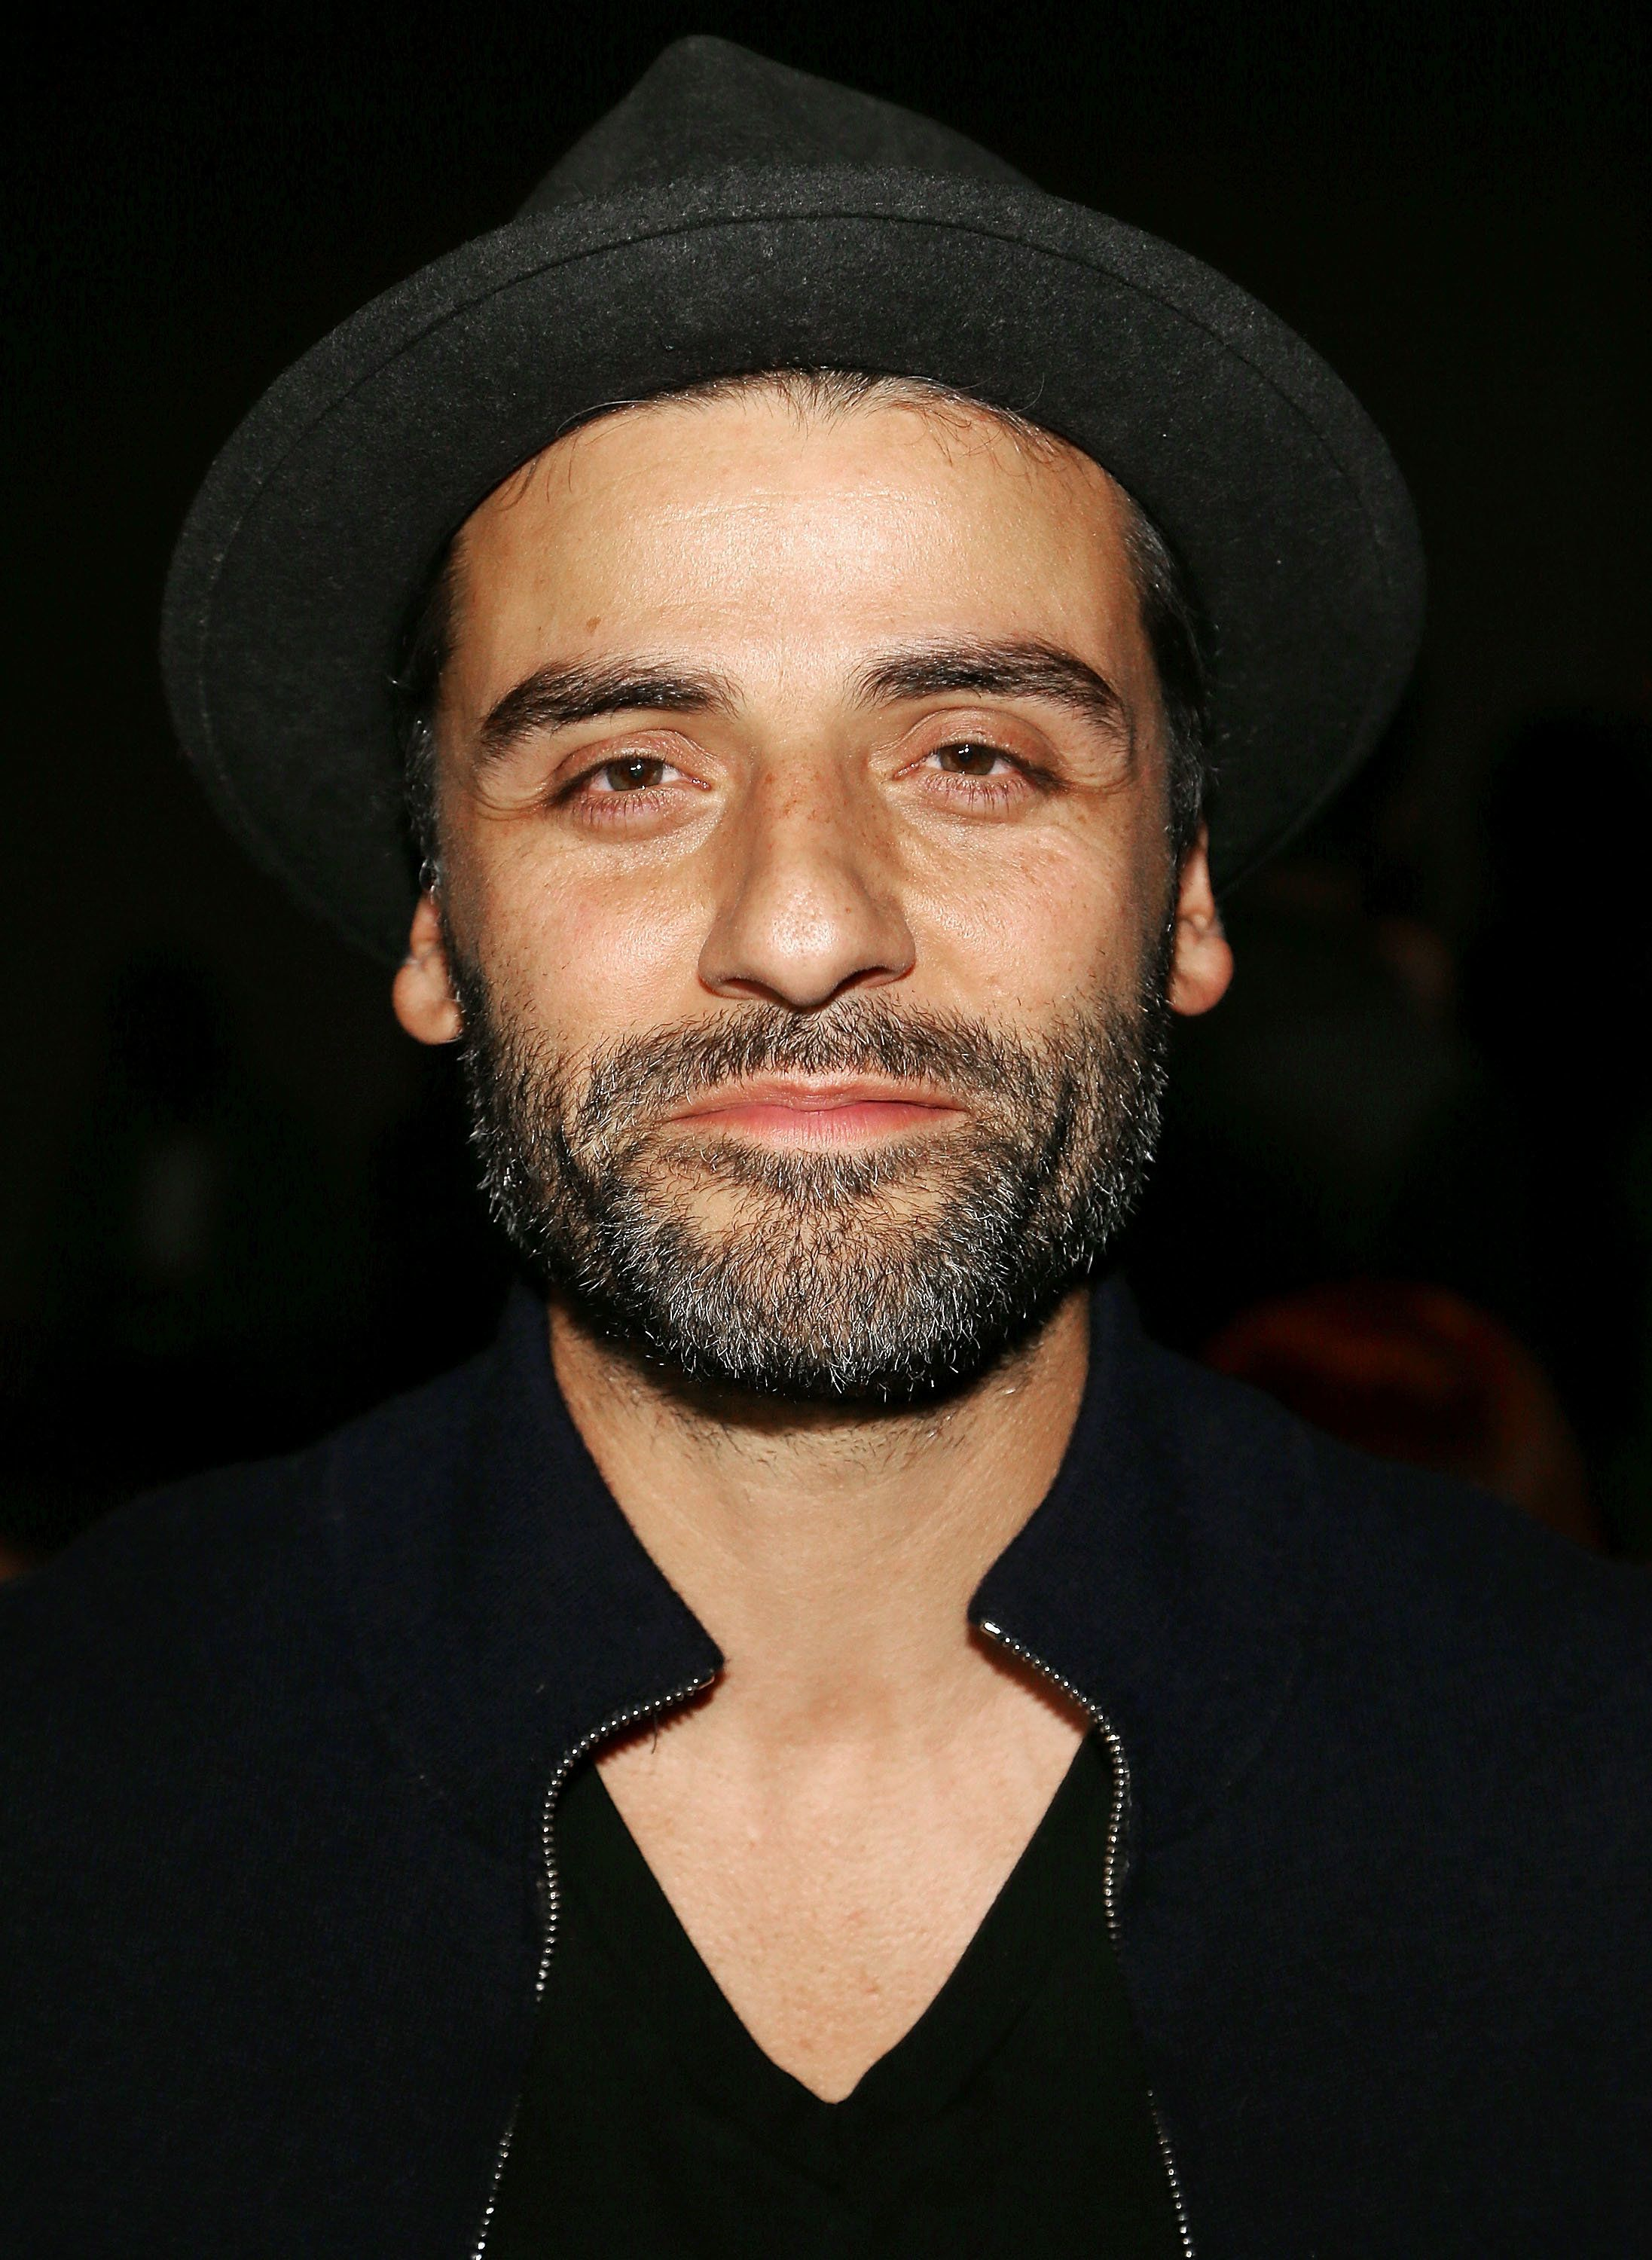 NEW YORK, NY - SEPTEMBER 12:  Actor Oscar Isaac attends the Rag & Bone fashion show during New York Fashion Week September 2016 at Skylight Clarkson North on September 12, 2016 in New York City.  (Photo by Paul Morigi/WireImage)